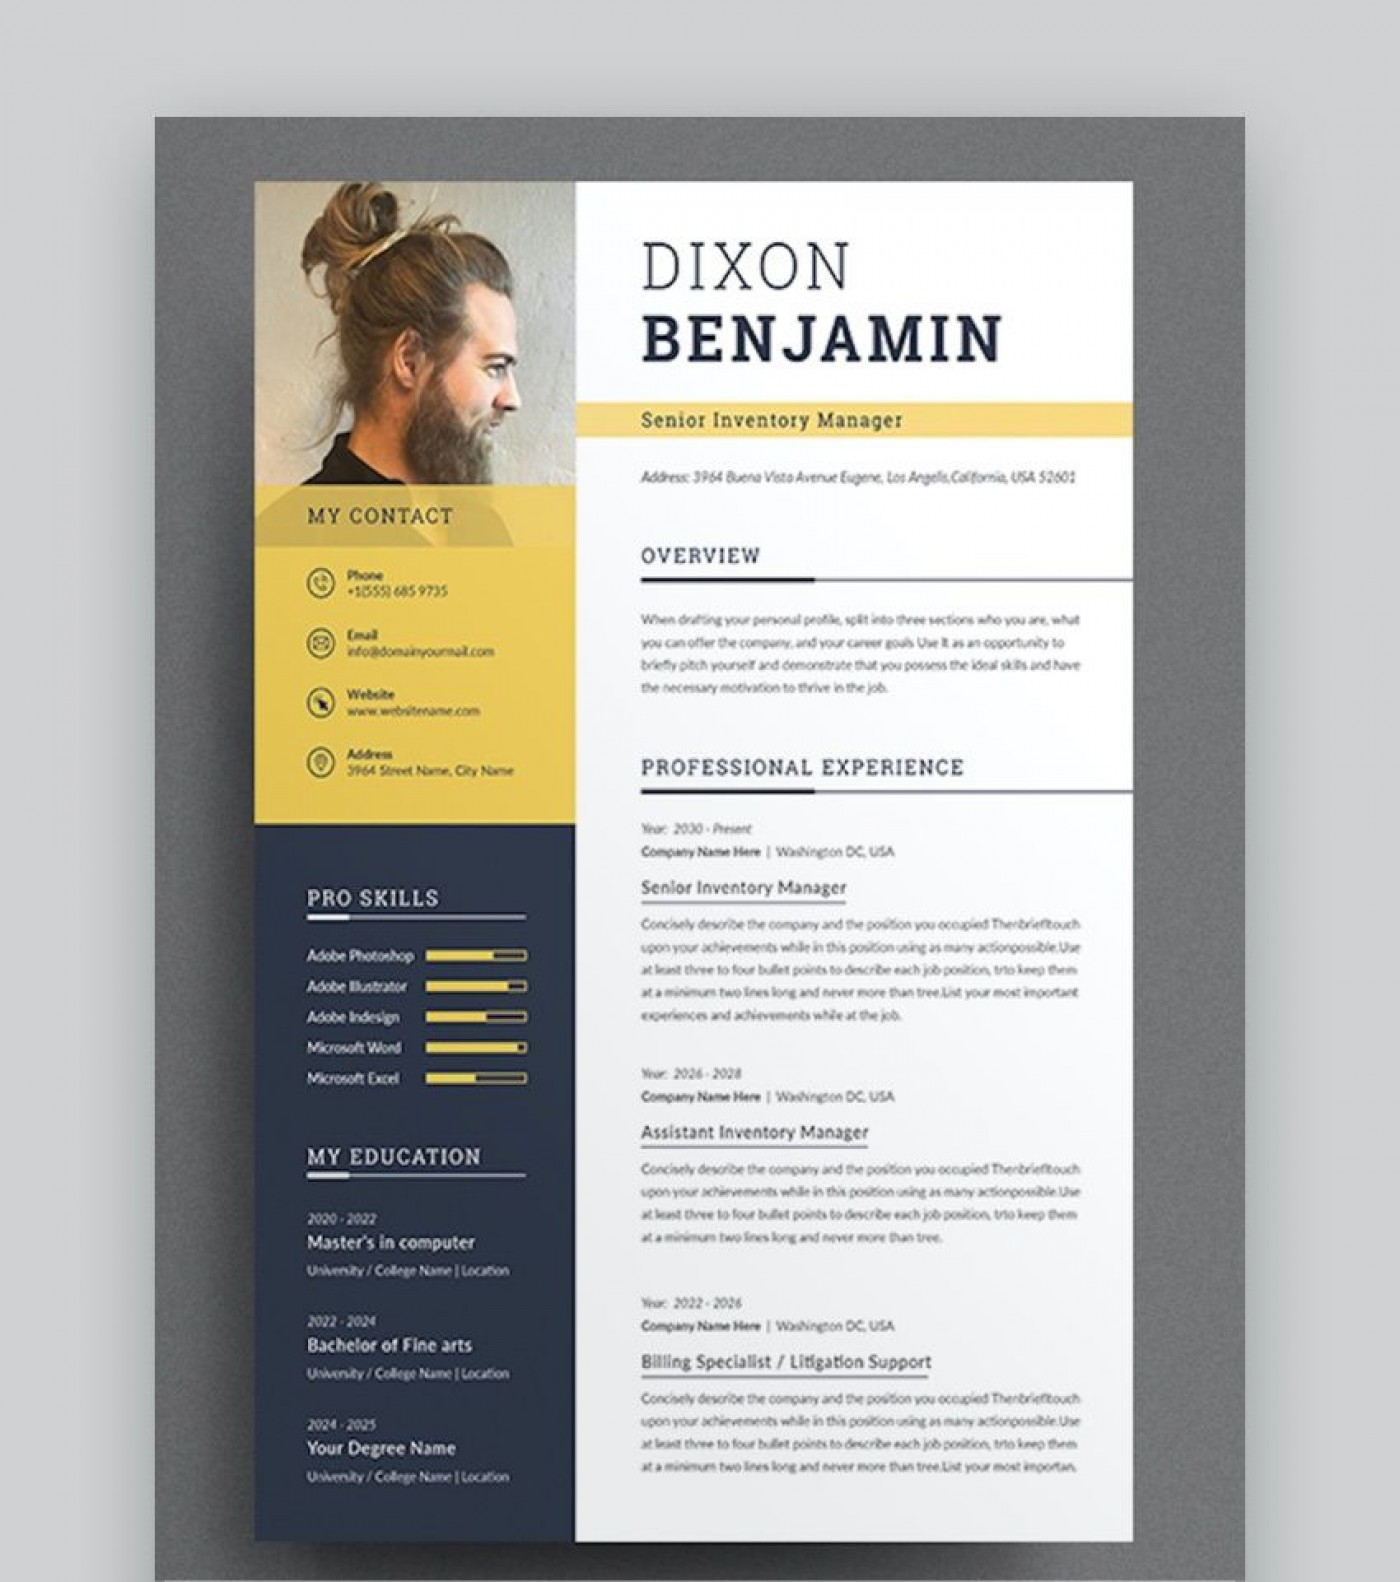 007 Fascinating Make A Resume Template In Word High Resolution  How To Create 2010 20131400